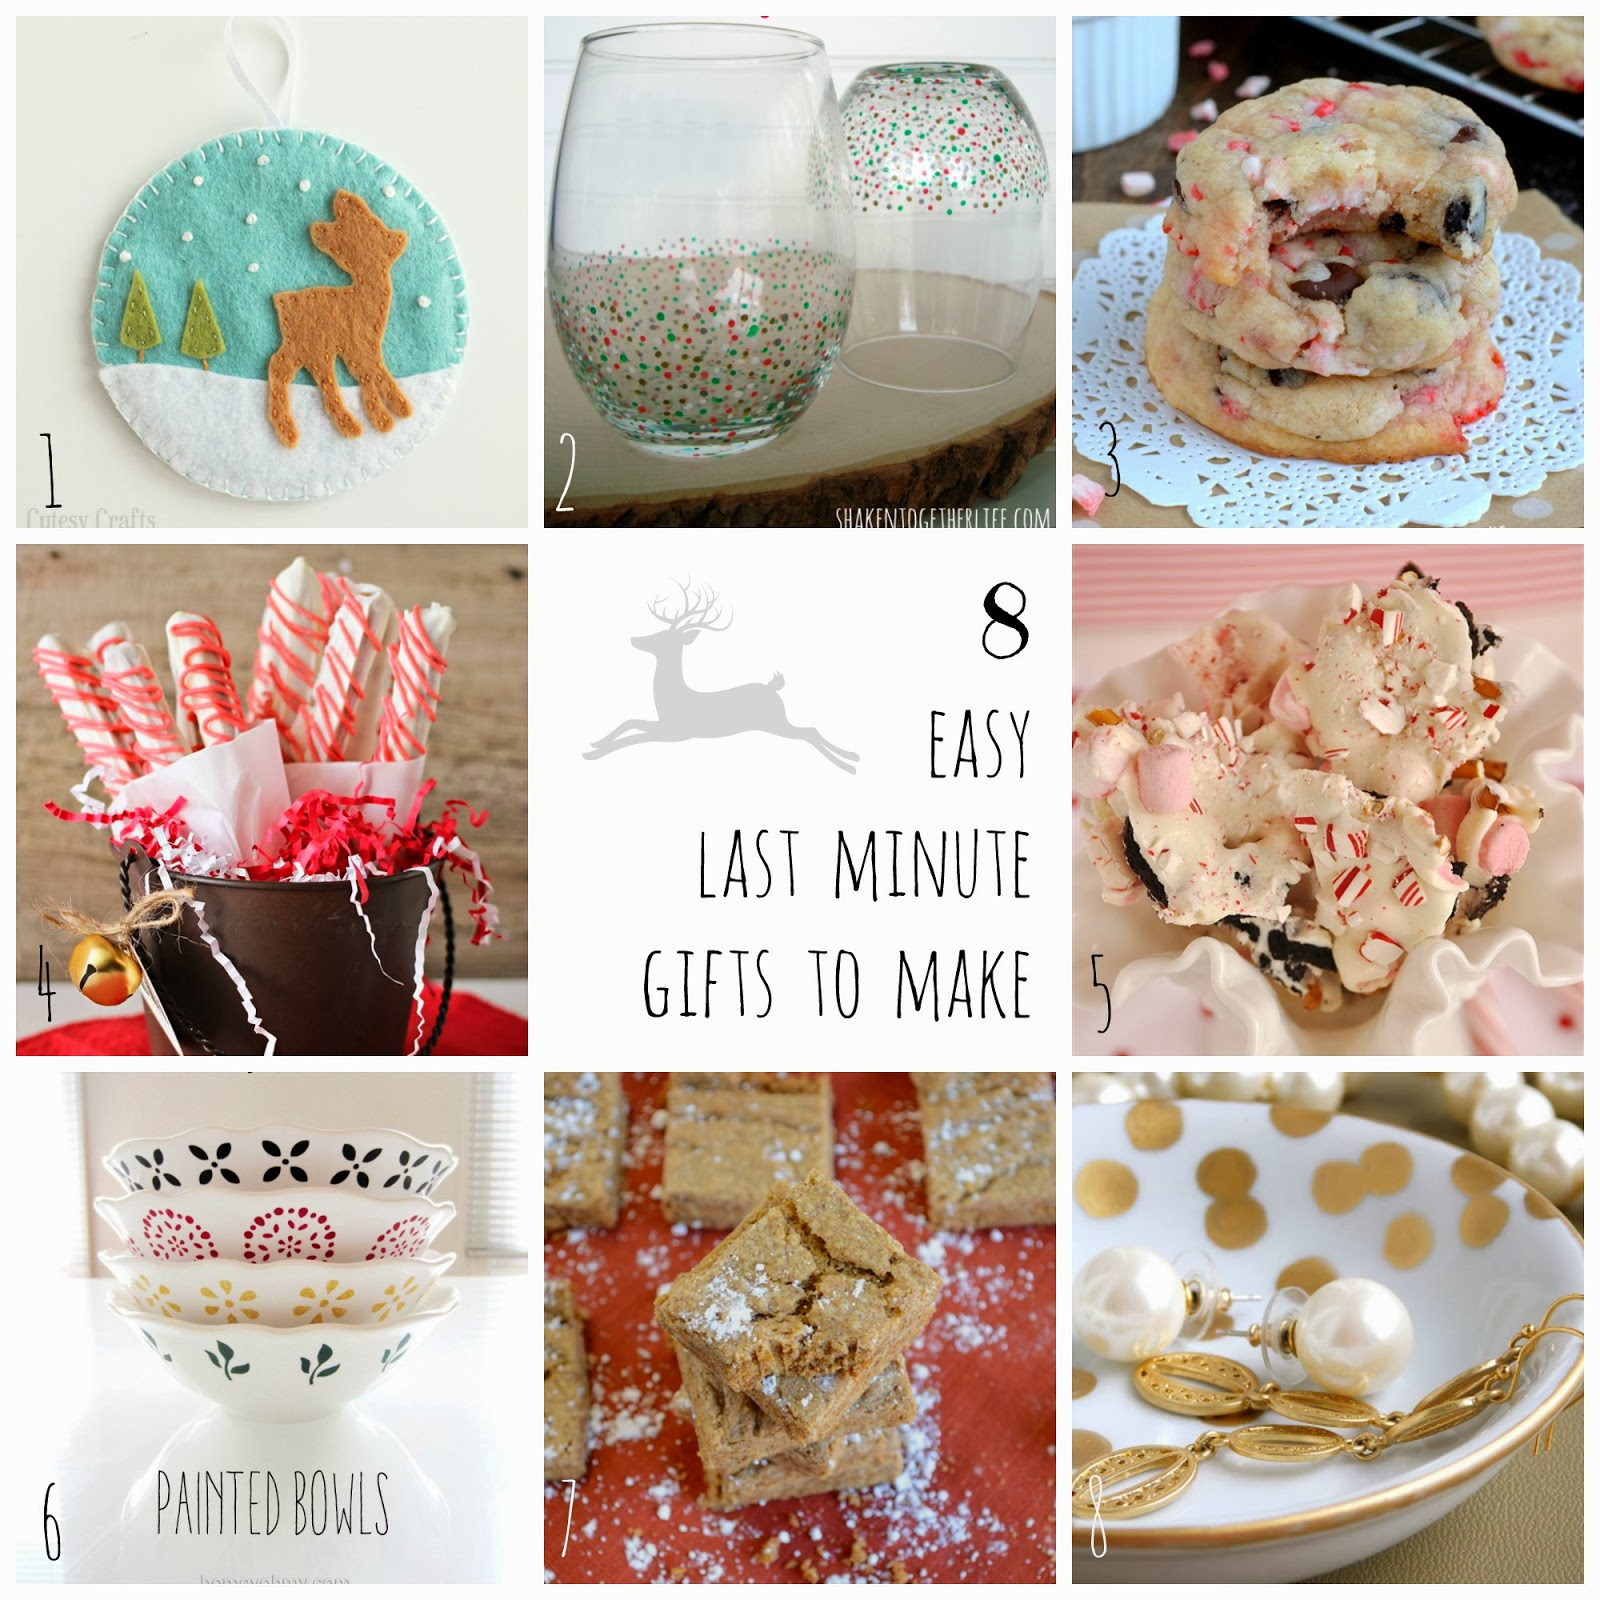 Last Minute Gifts For Mom Christmas 5 Last Minute DIY Christmas ...